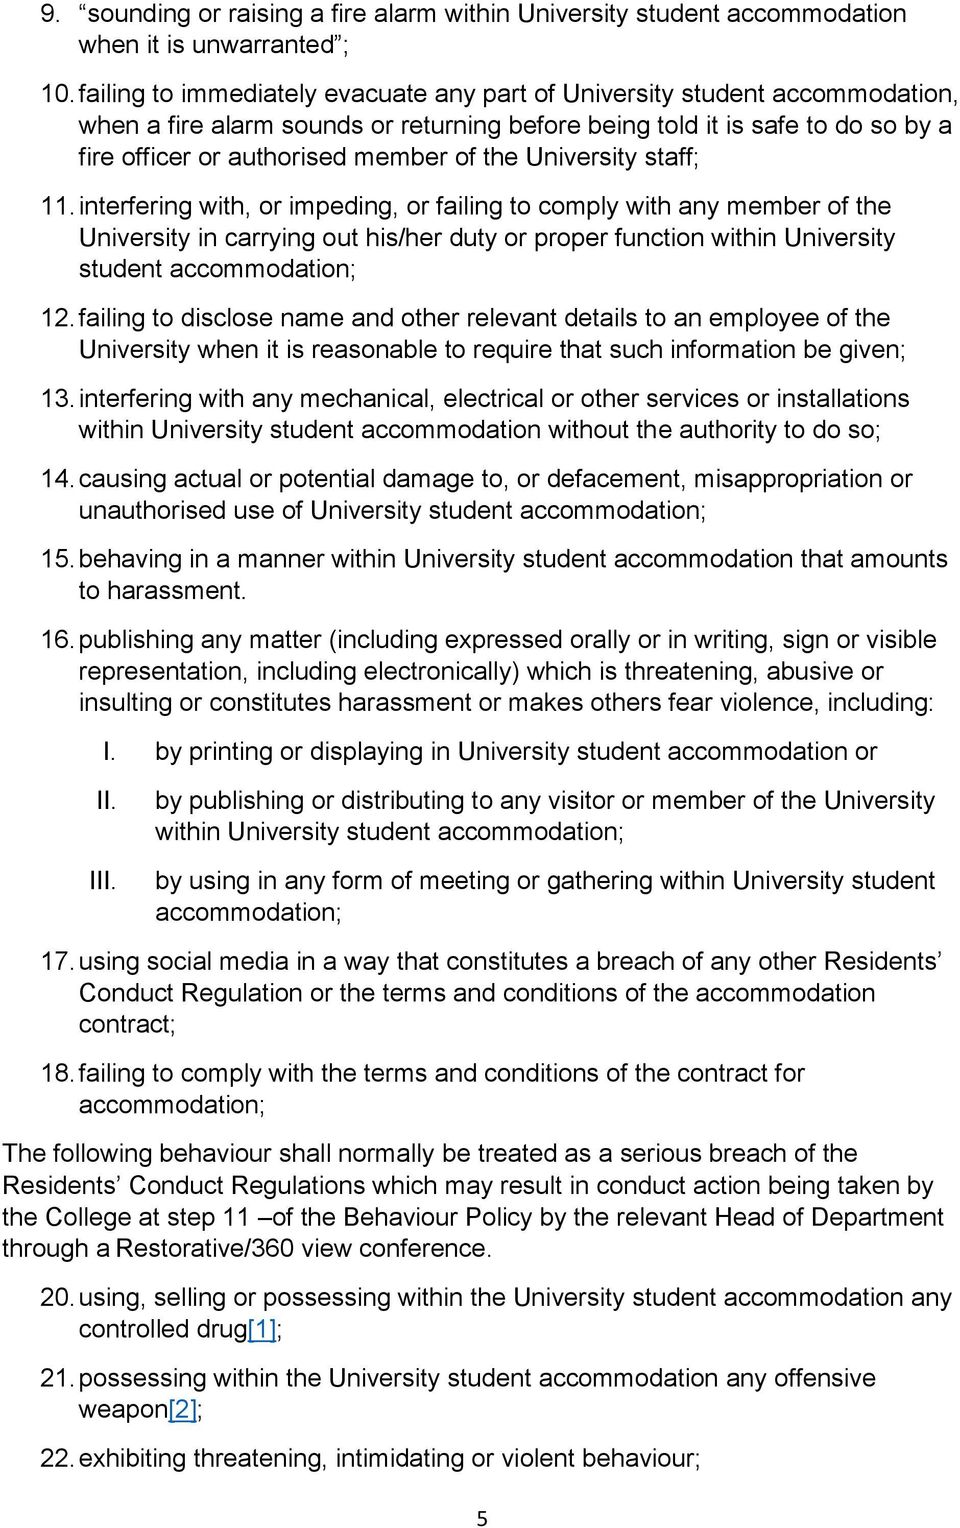 University staff; 11. interfering with, or impeding, or failing to comply with any member of the University in carrying out his/her duty or proper function within University student 12.